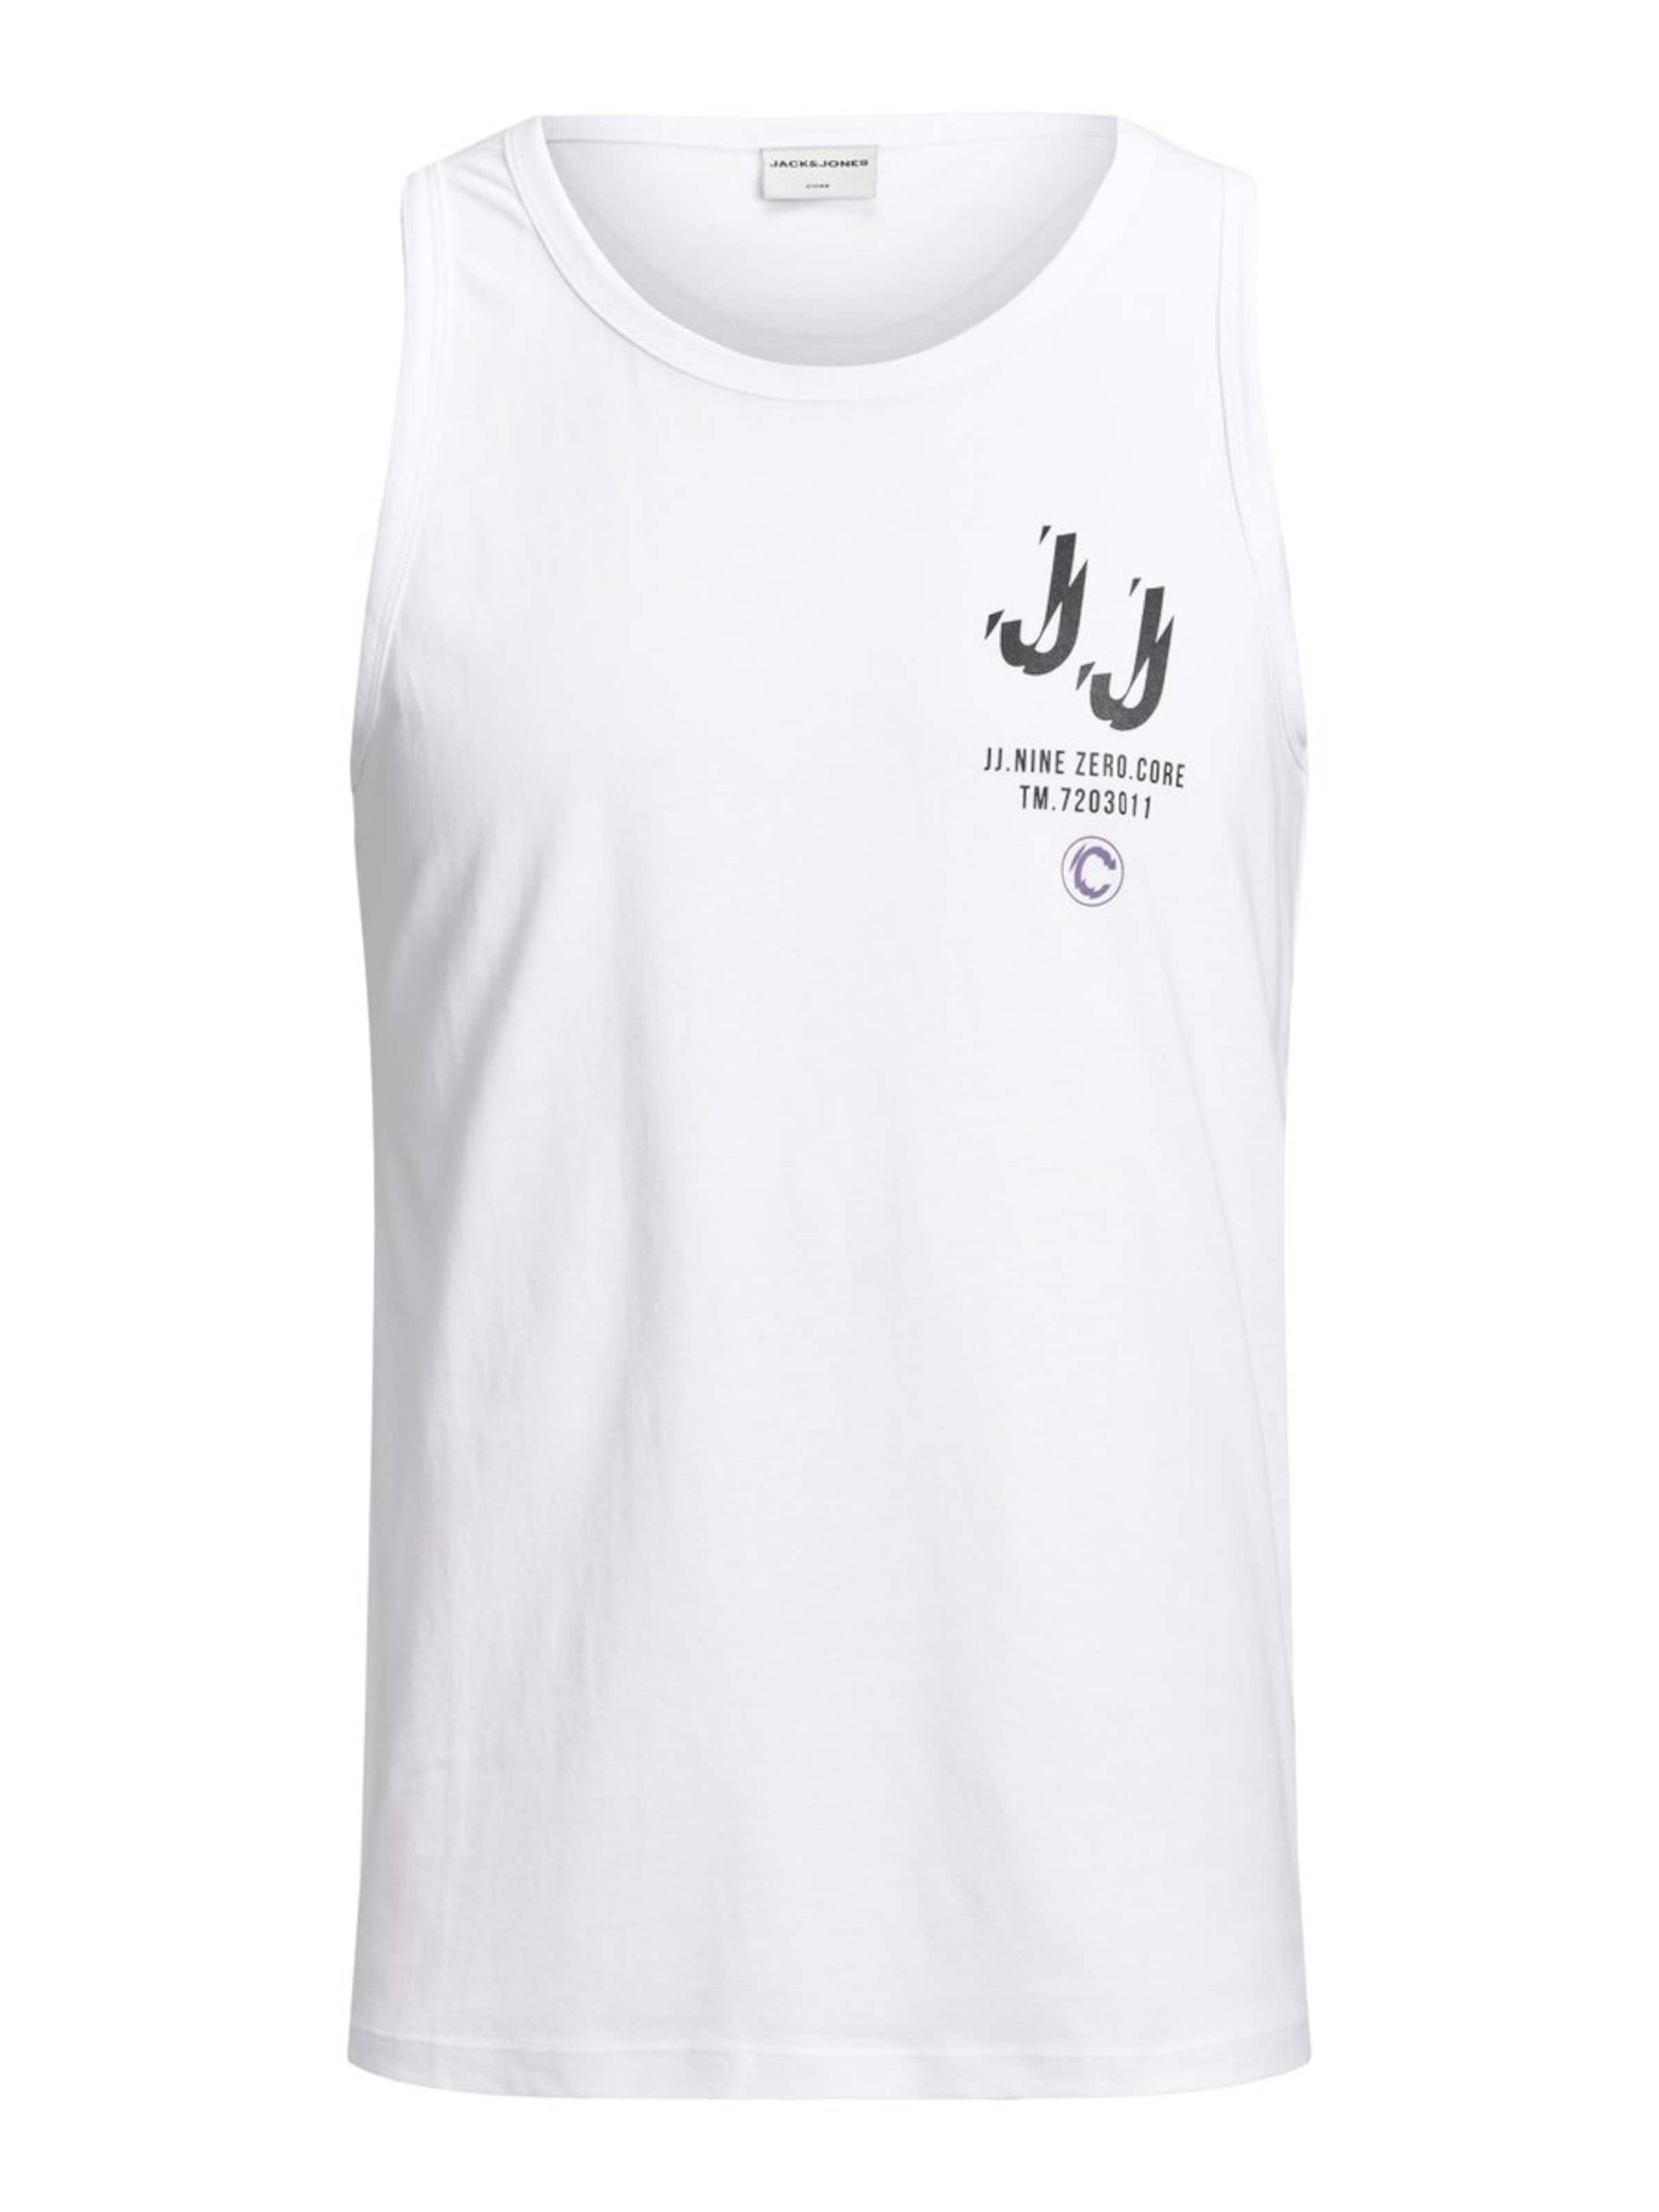 Jones shirt PourpreNoir Jackamp; Blanc En T 5LAqcj34R